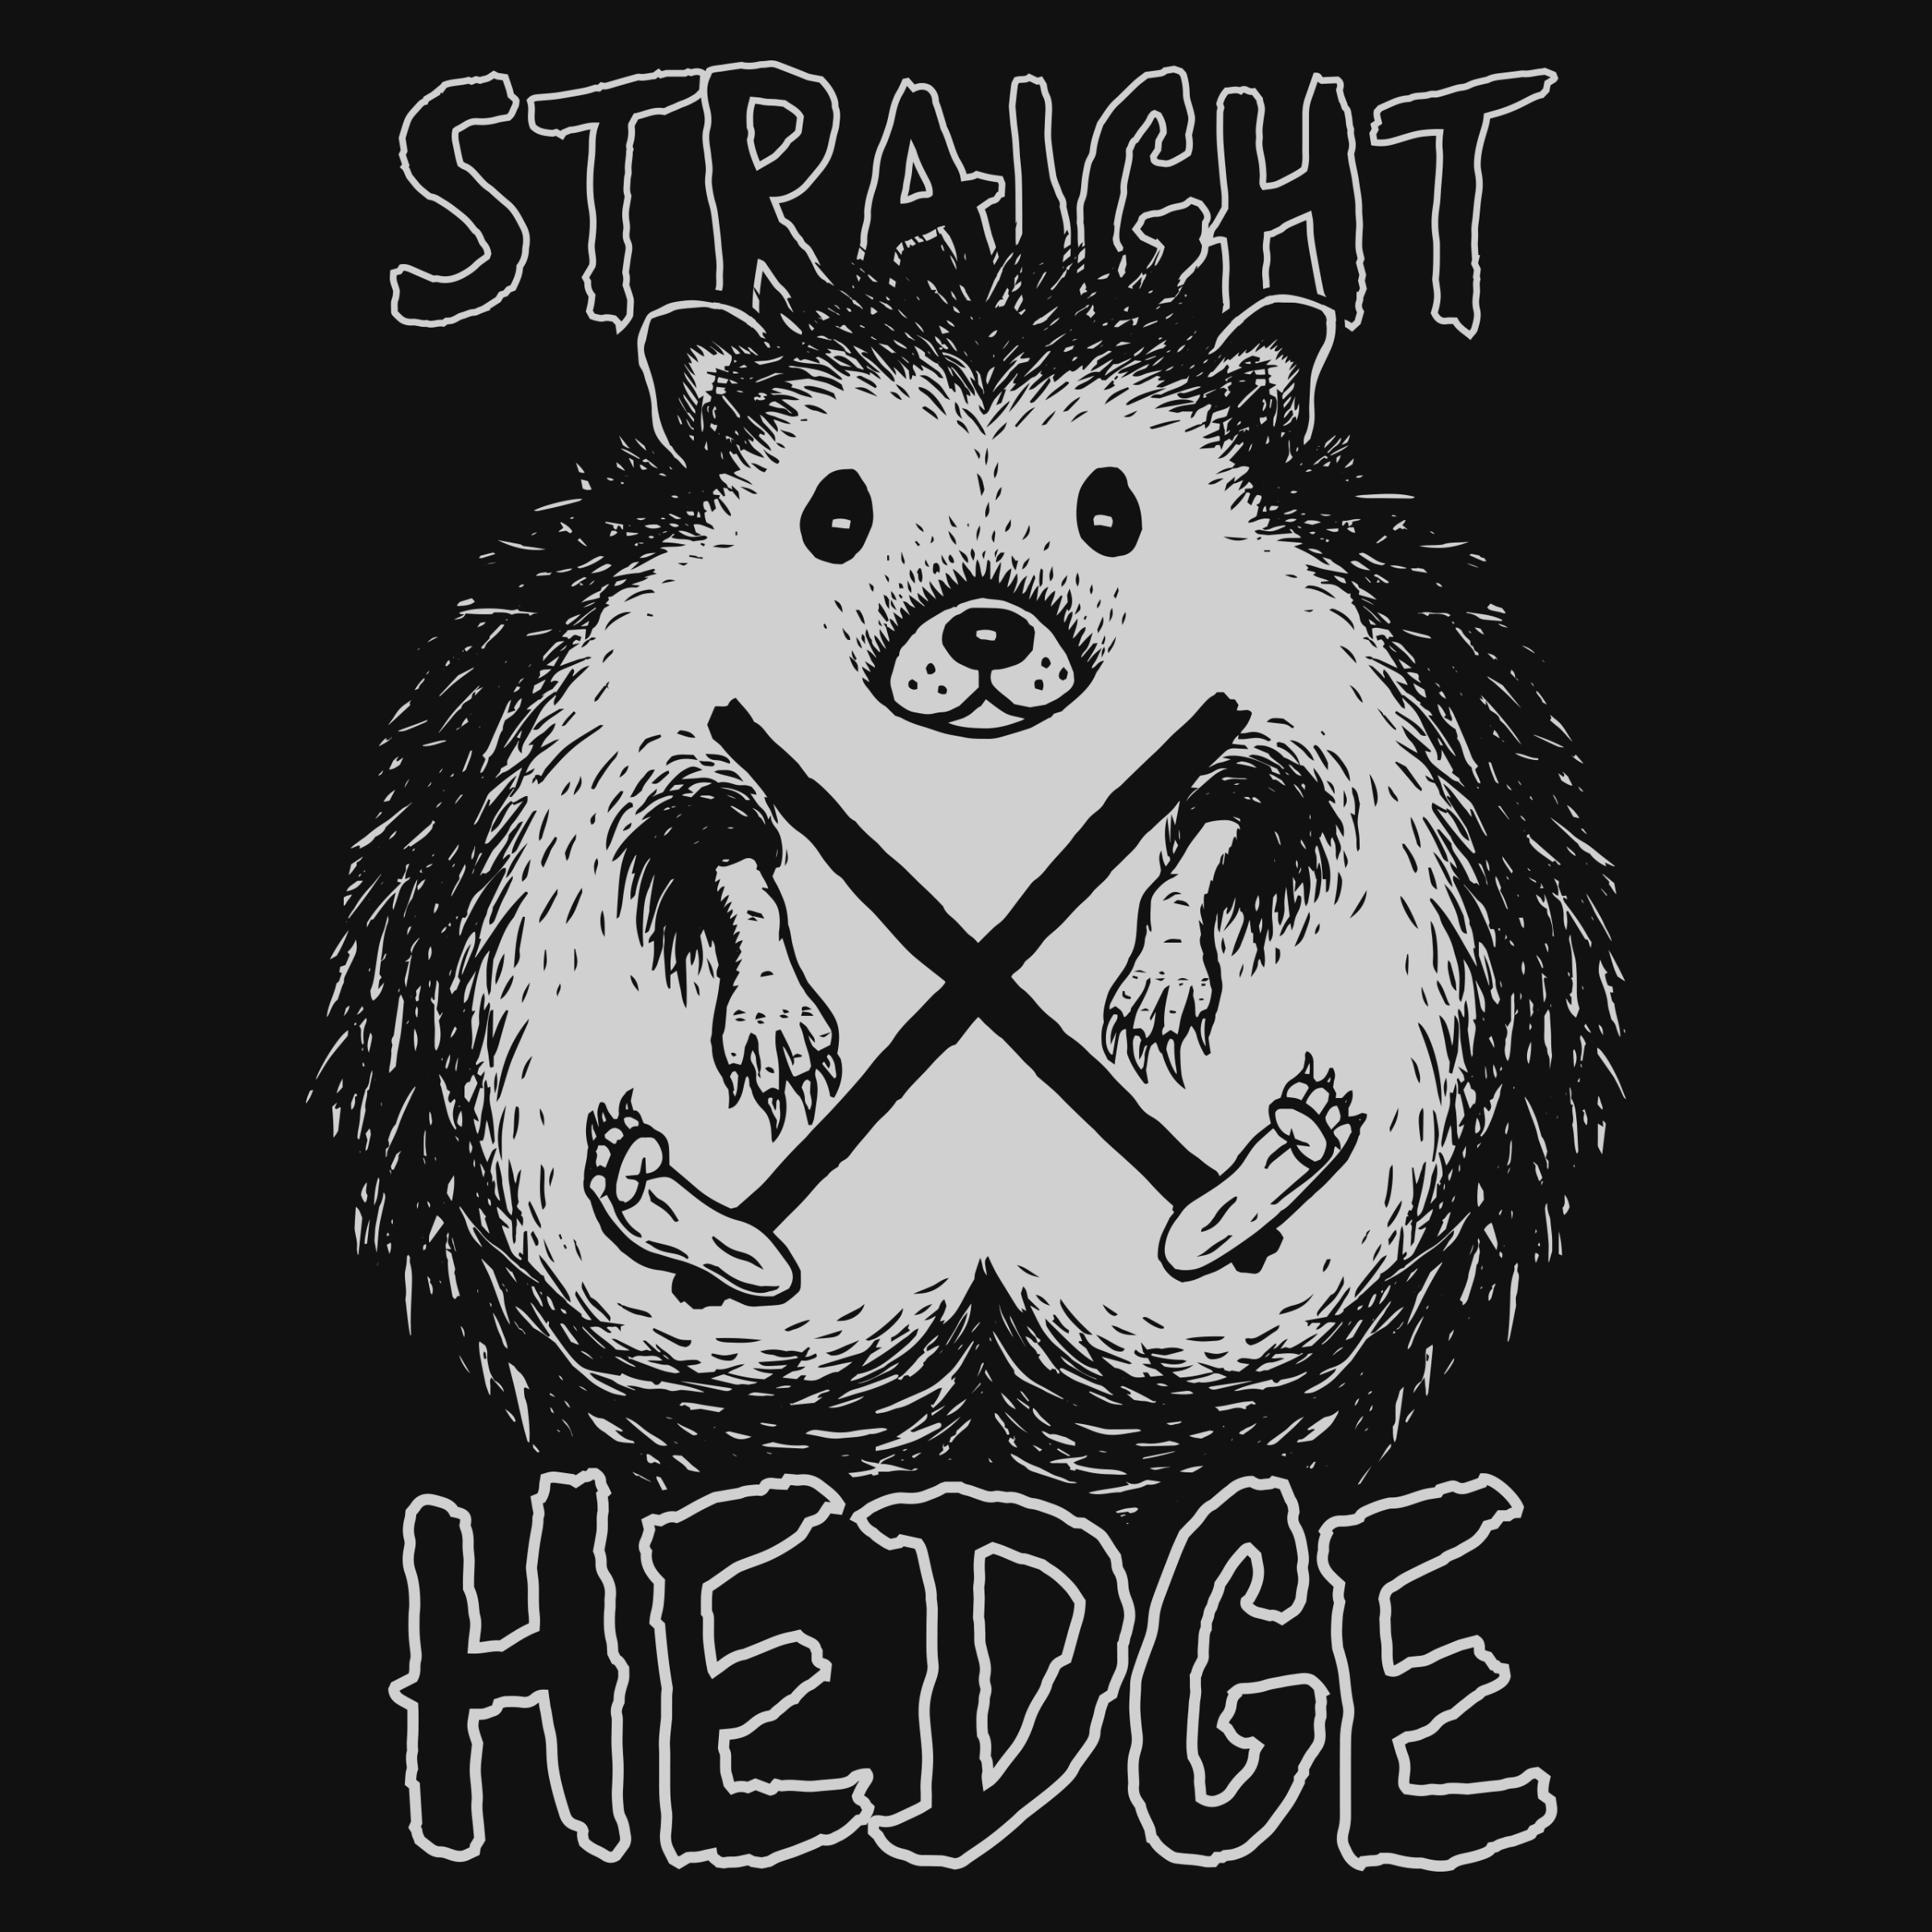 Straight Hedge